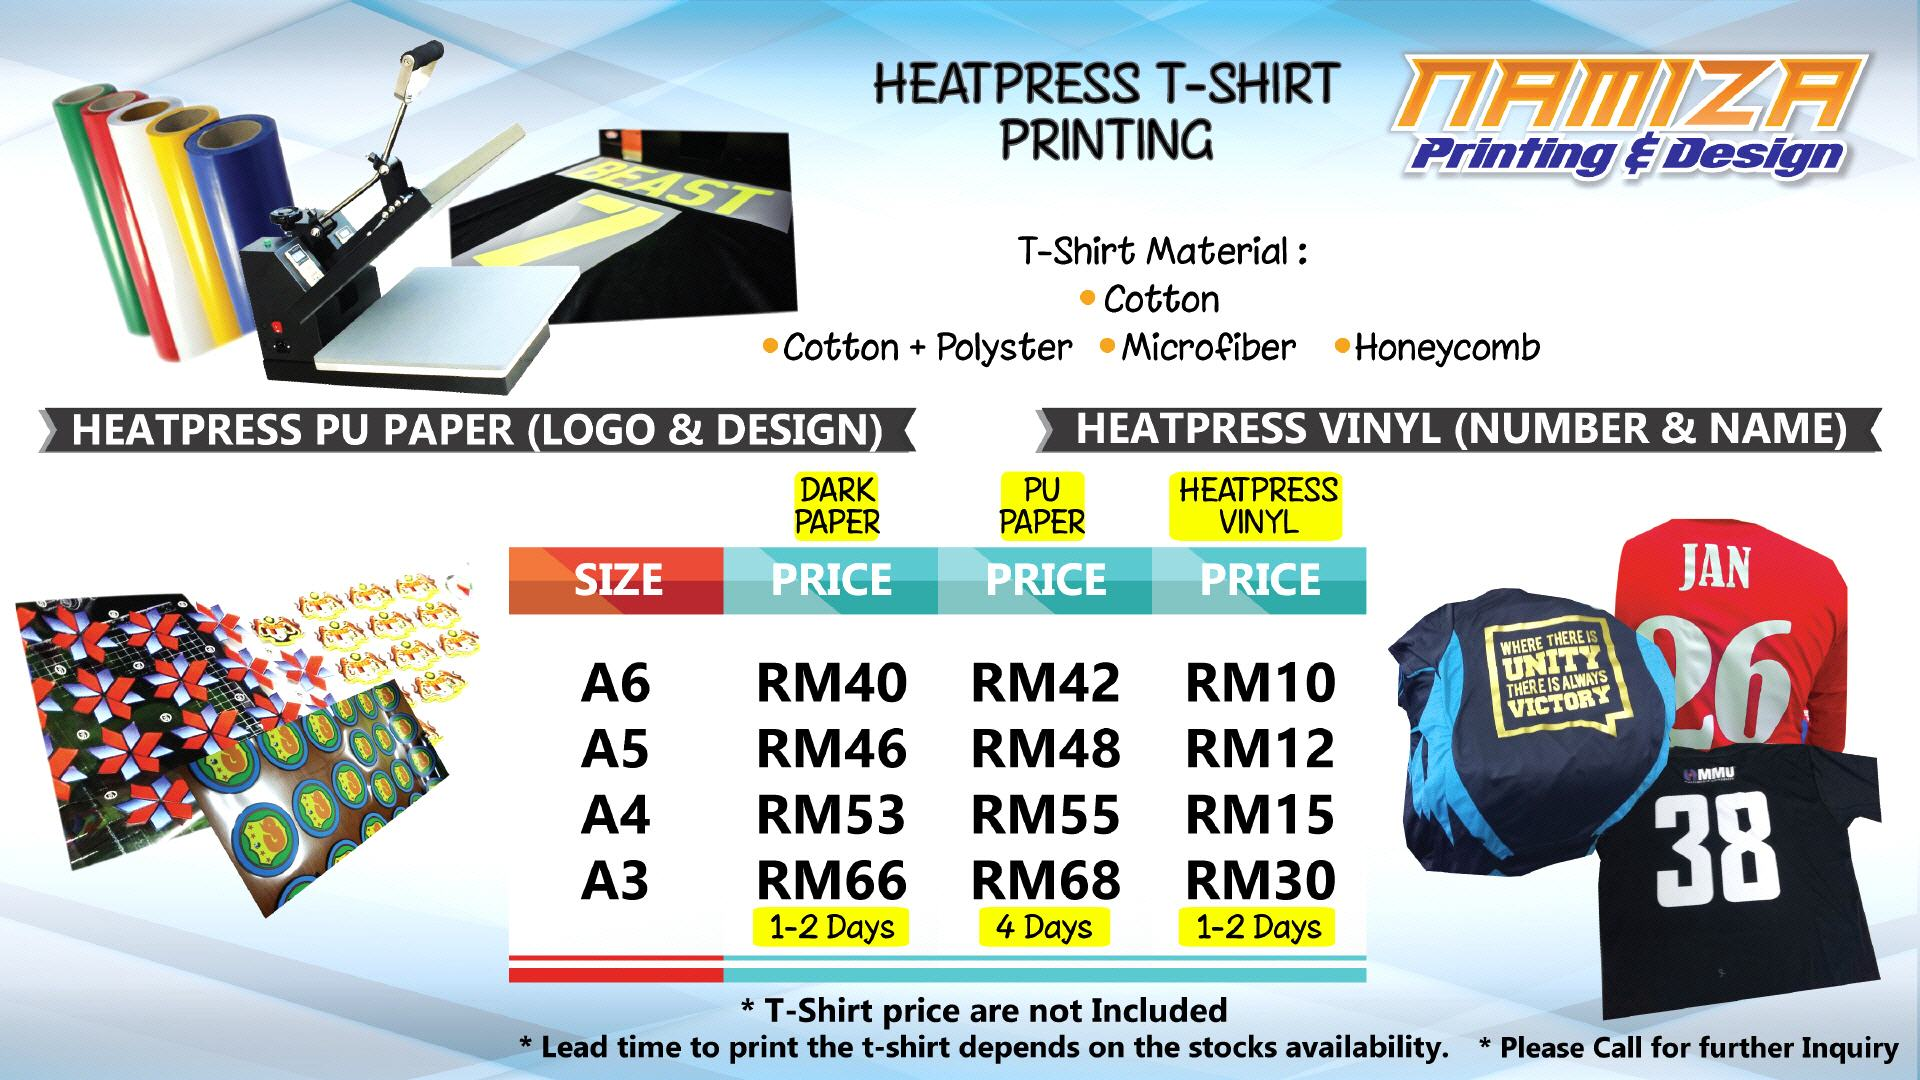 heat press tshirt business plan